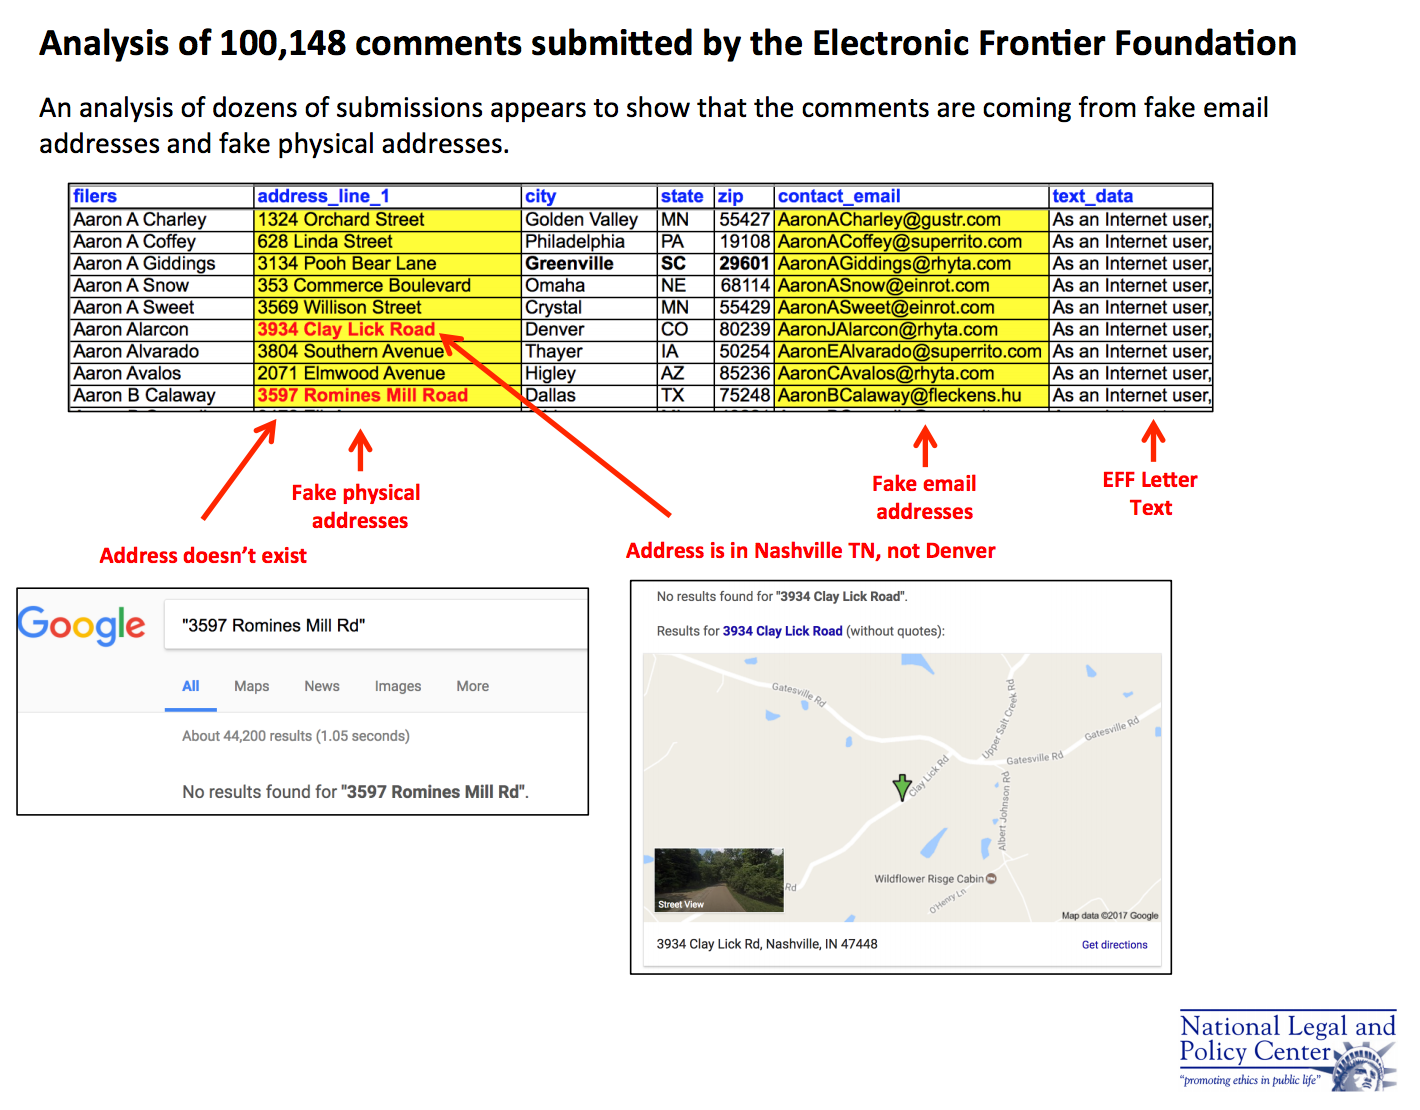 Analysis of 100,148 comments submitted by the Electronic Frontier Foundation [National Legal and Policy Center]